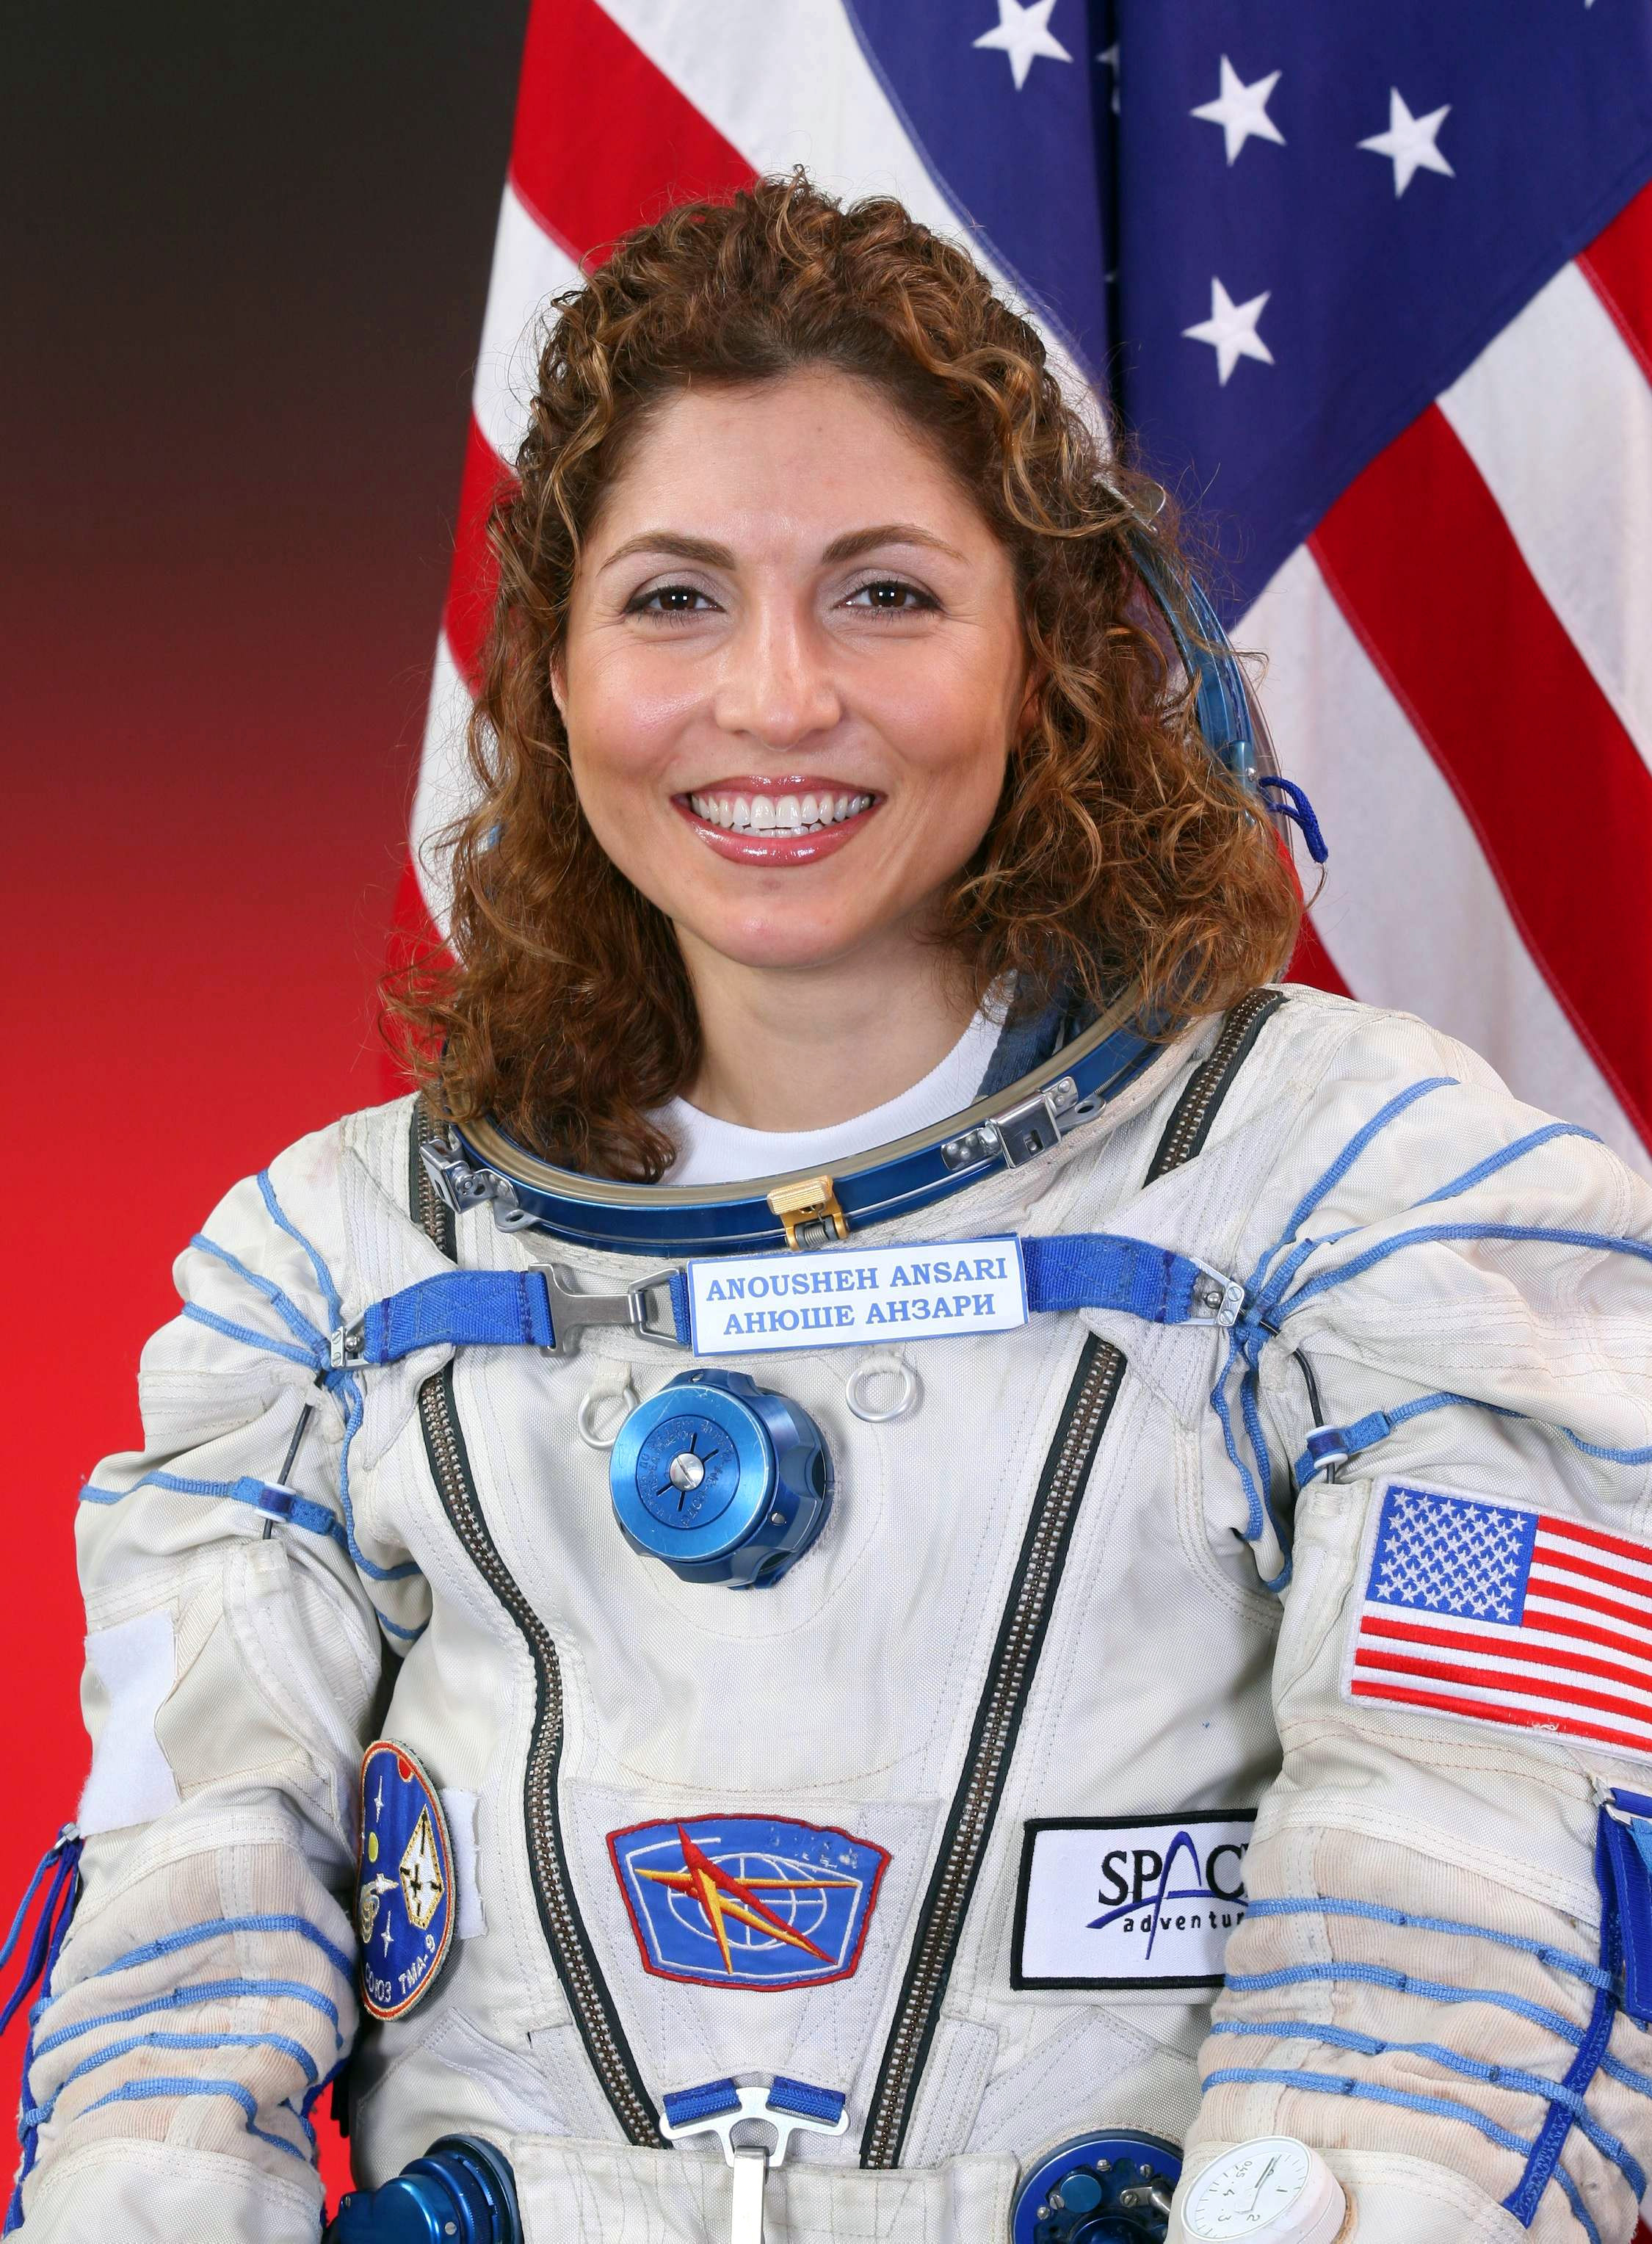 Anousheh Ansari, first Iranian woman in space, fourth overall self-funded space traveler, and the first self-funded woman to fly to the International Space Station.